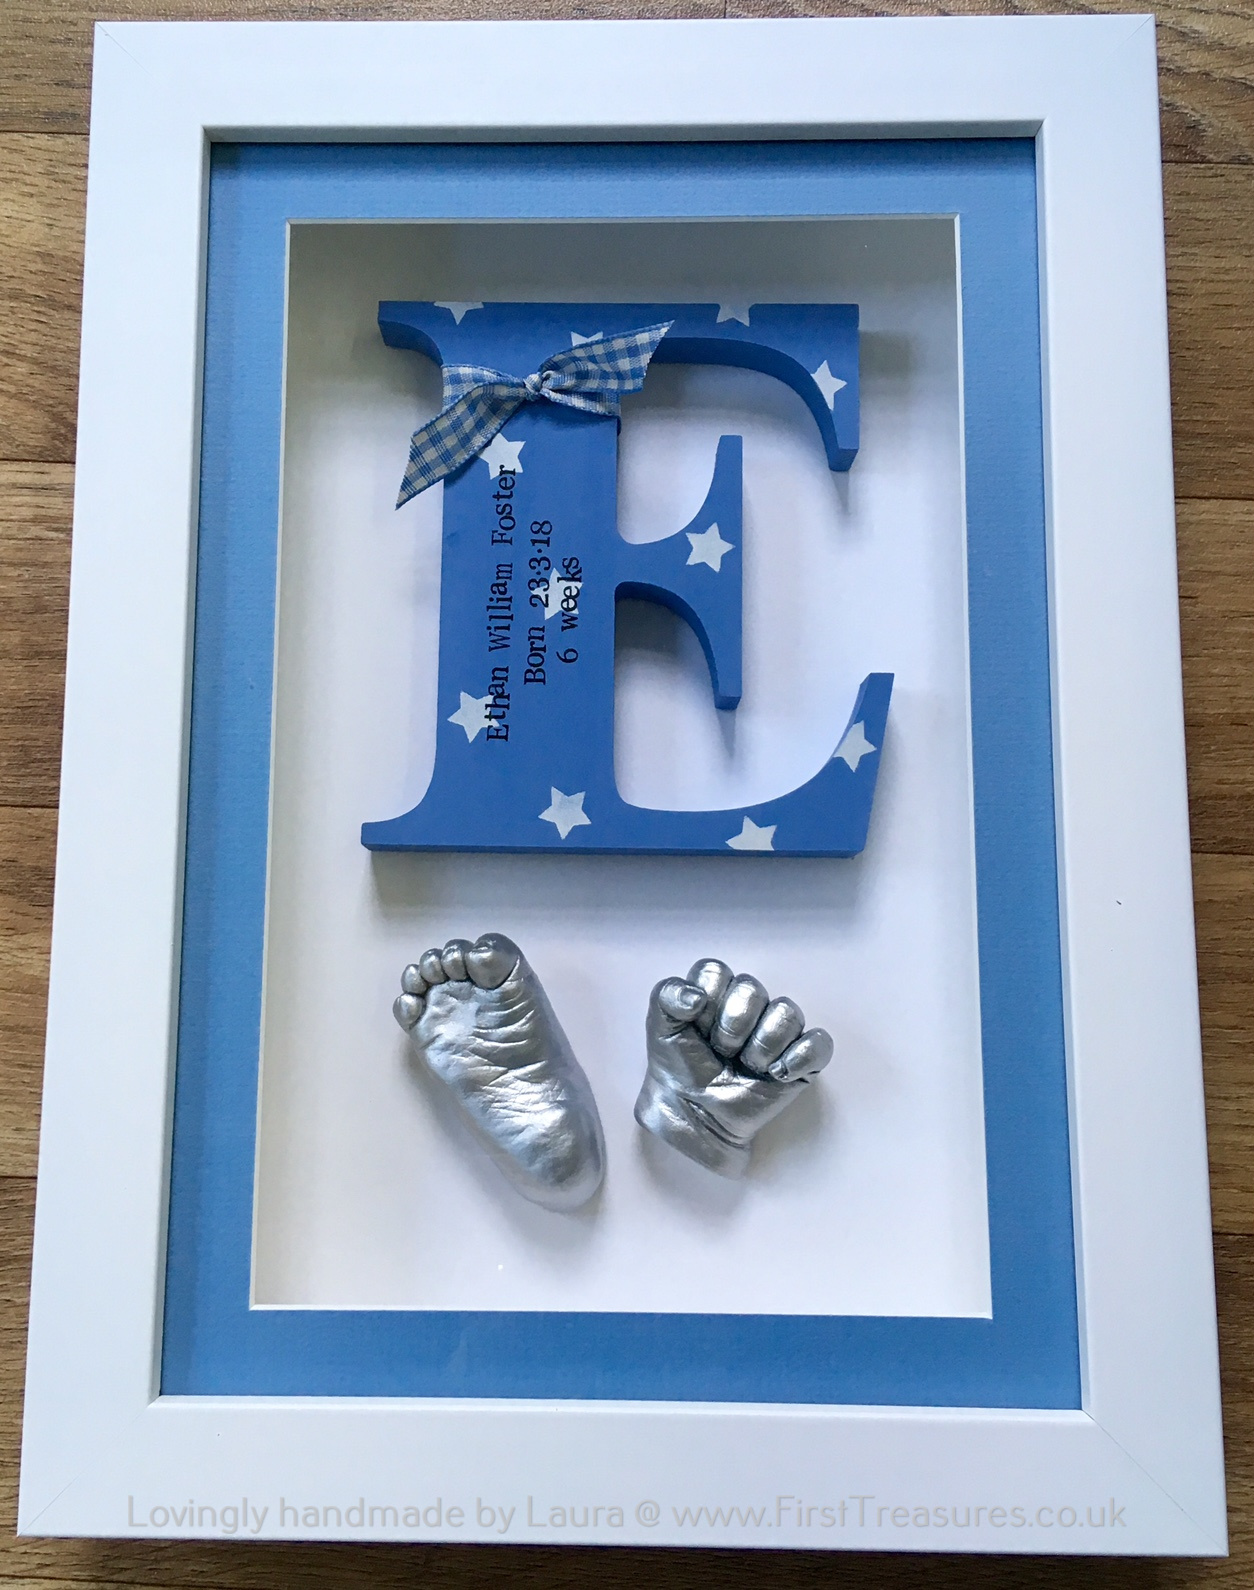 3d framed hand and foot casts with wooden initial